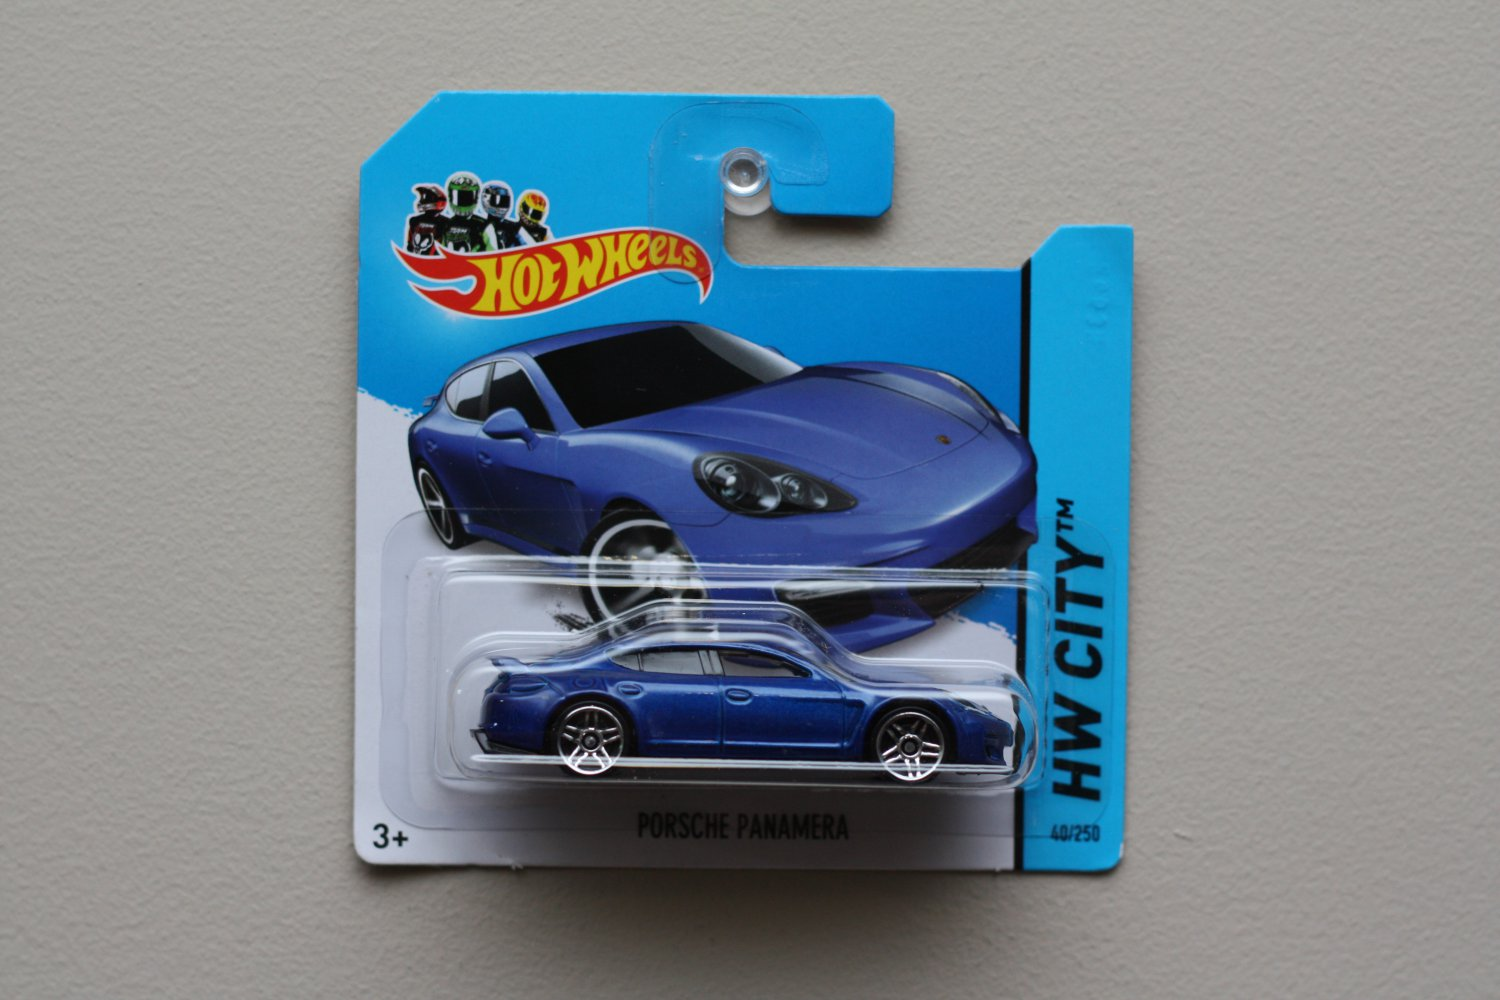 Hot Wheels 2014 HW City Porsche Panamera (blue) (See Condition)